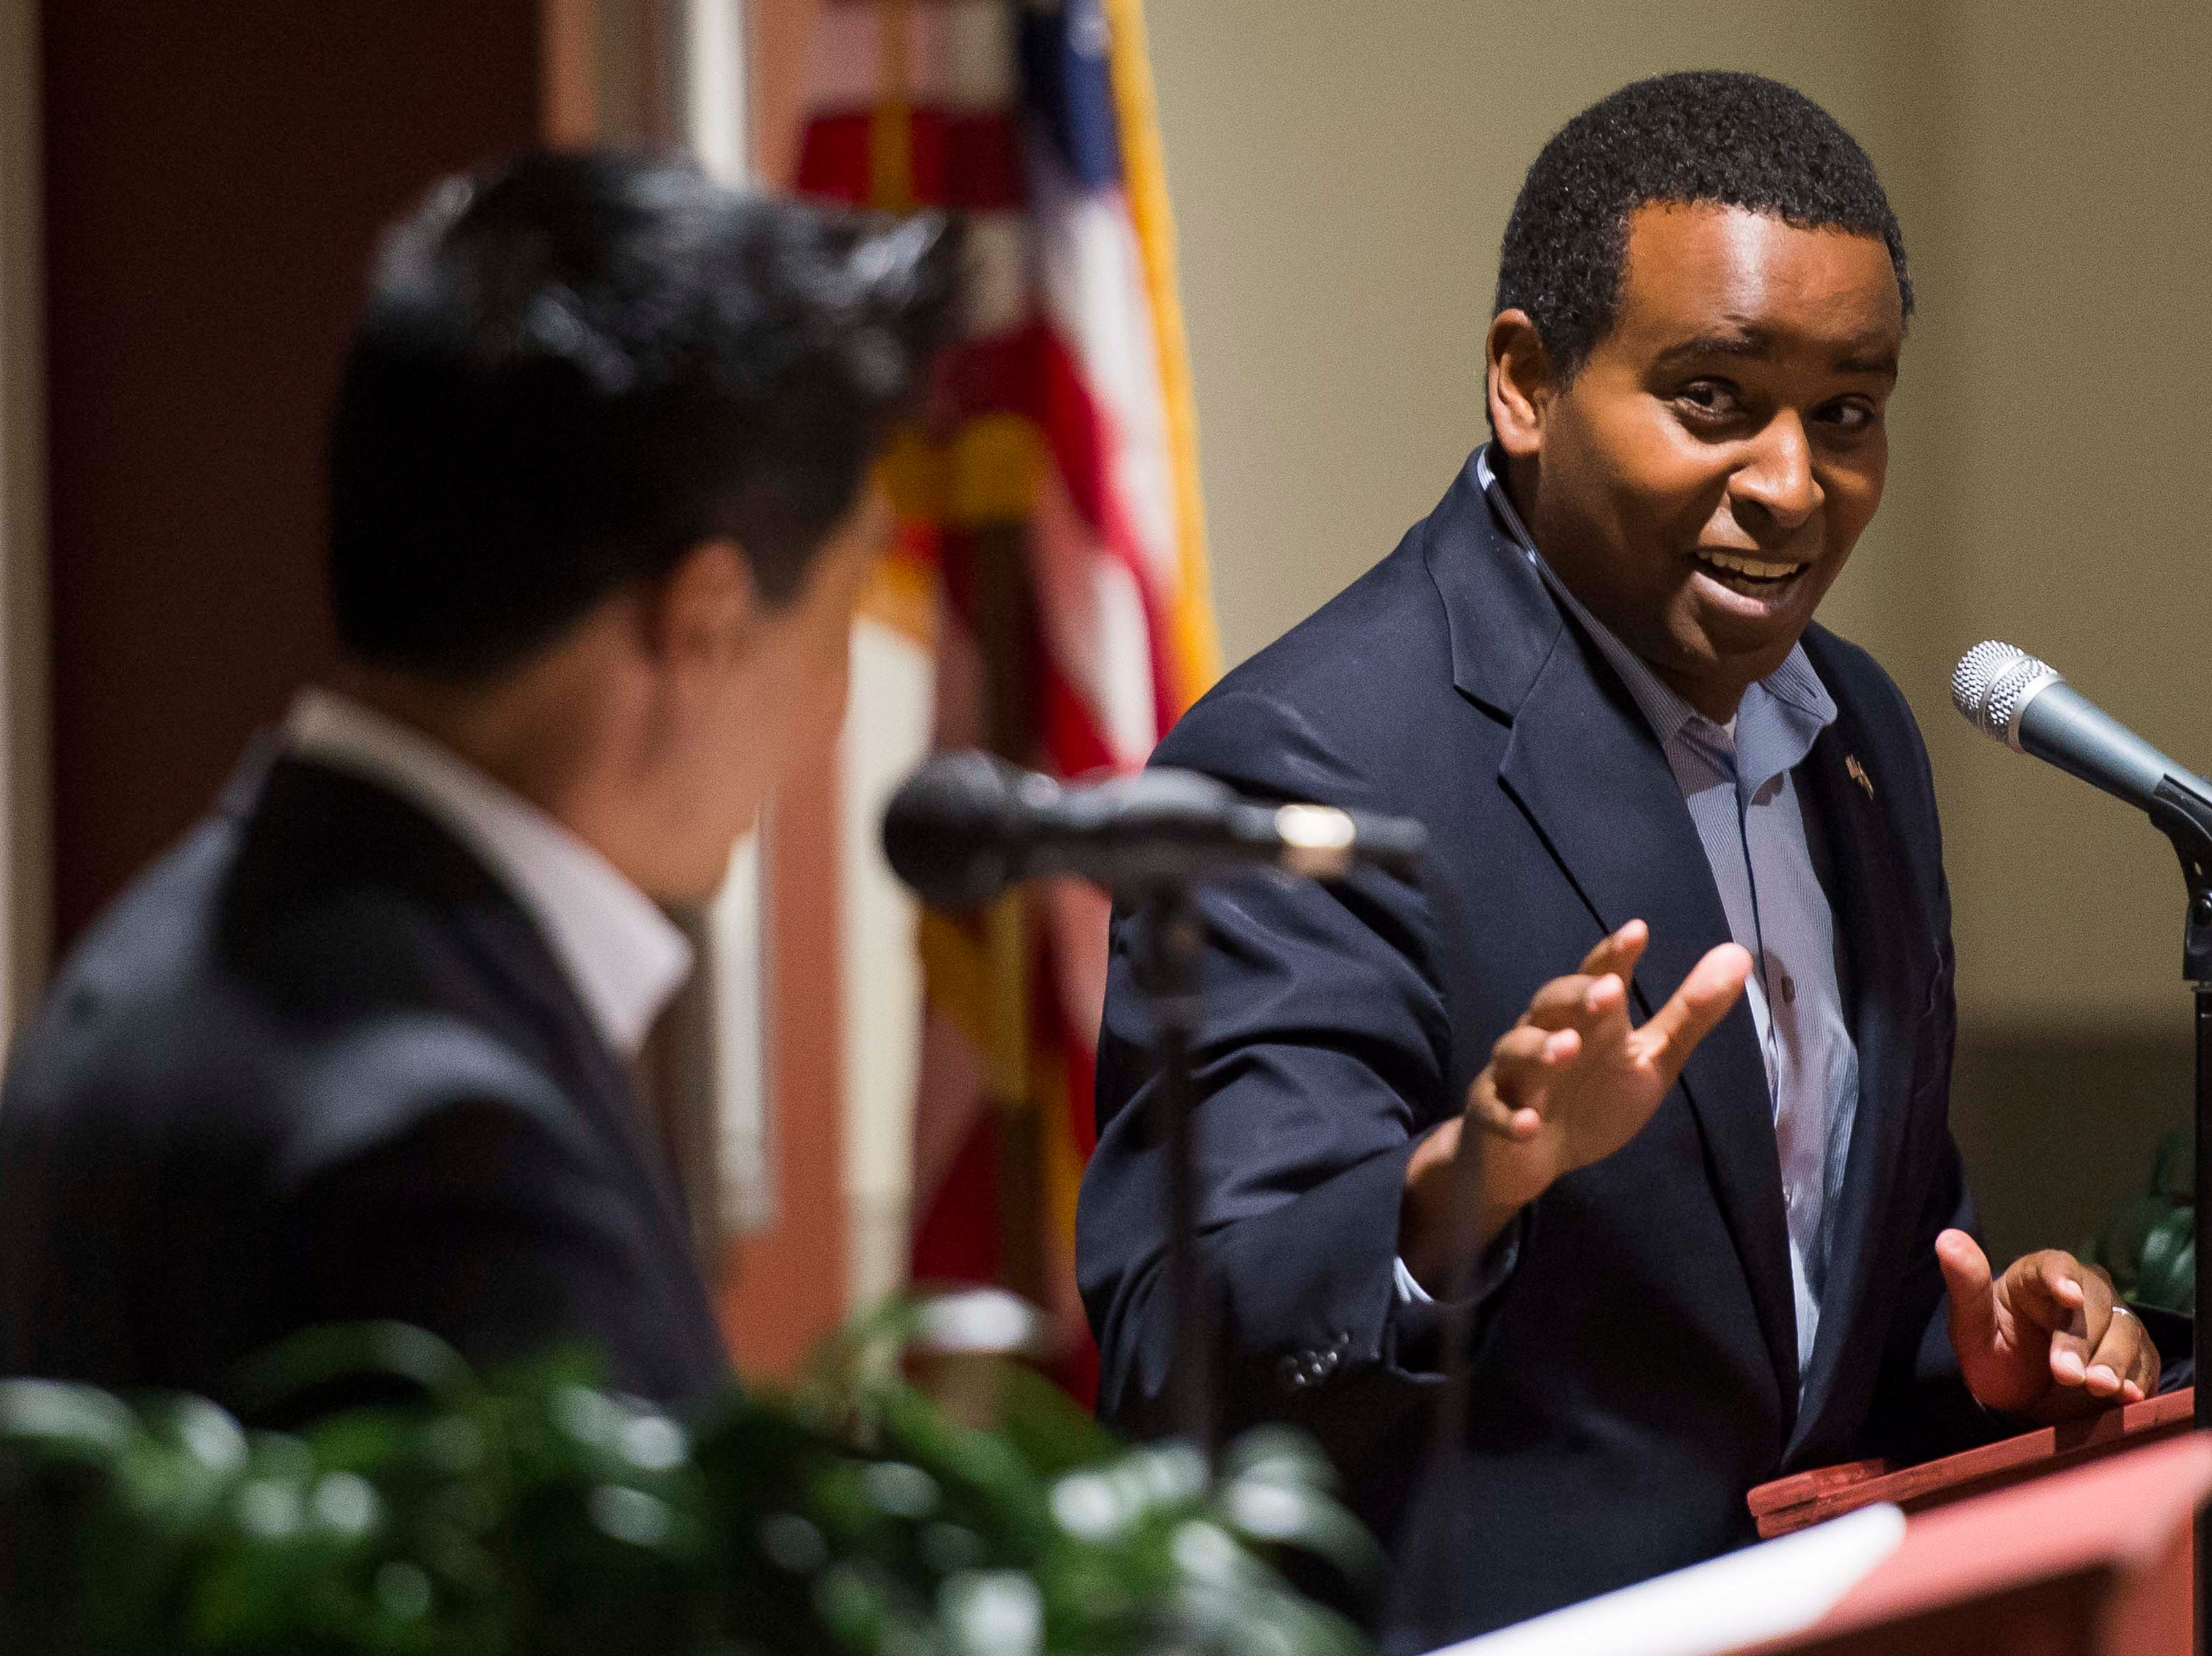 Colorado's 2nd Congressional District Democratic nominee Joe Neguse cross-examines Republican nominee Peter Yu during a debate on Wednesday, Sept. 26, 2018, at the Loveland Classical Schools in Loveland, Colo.